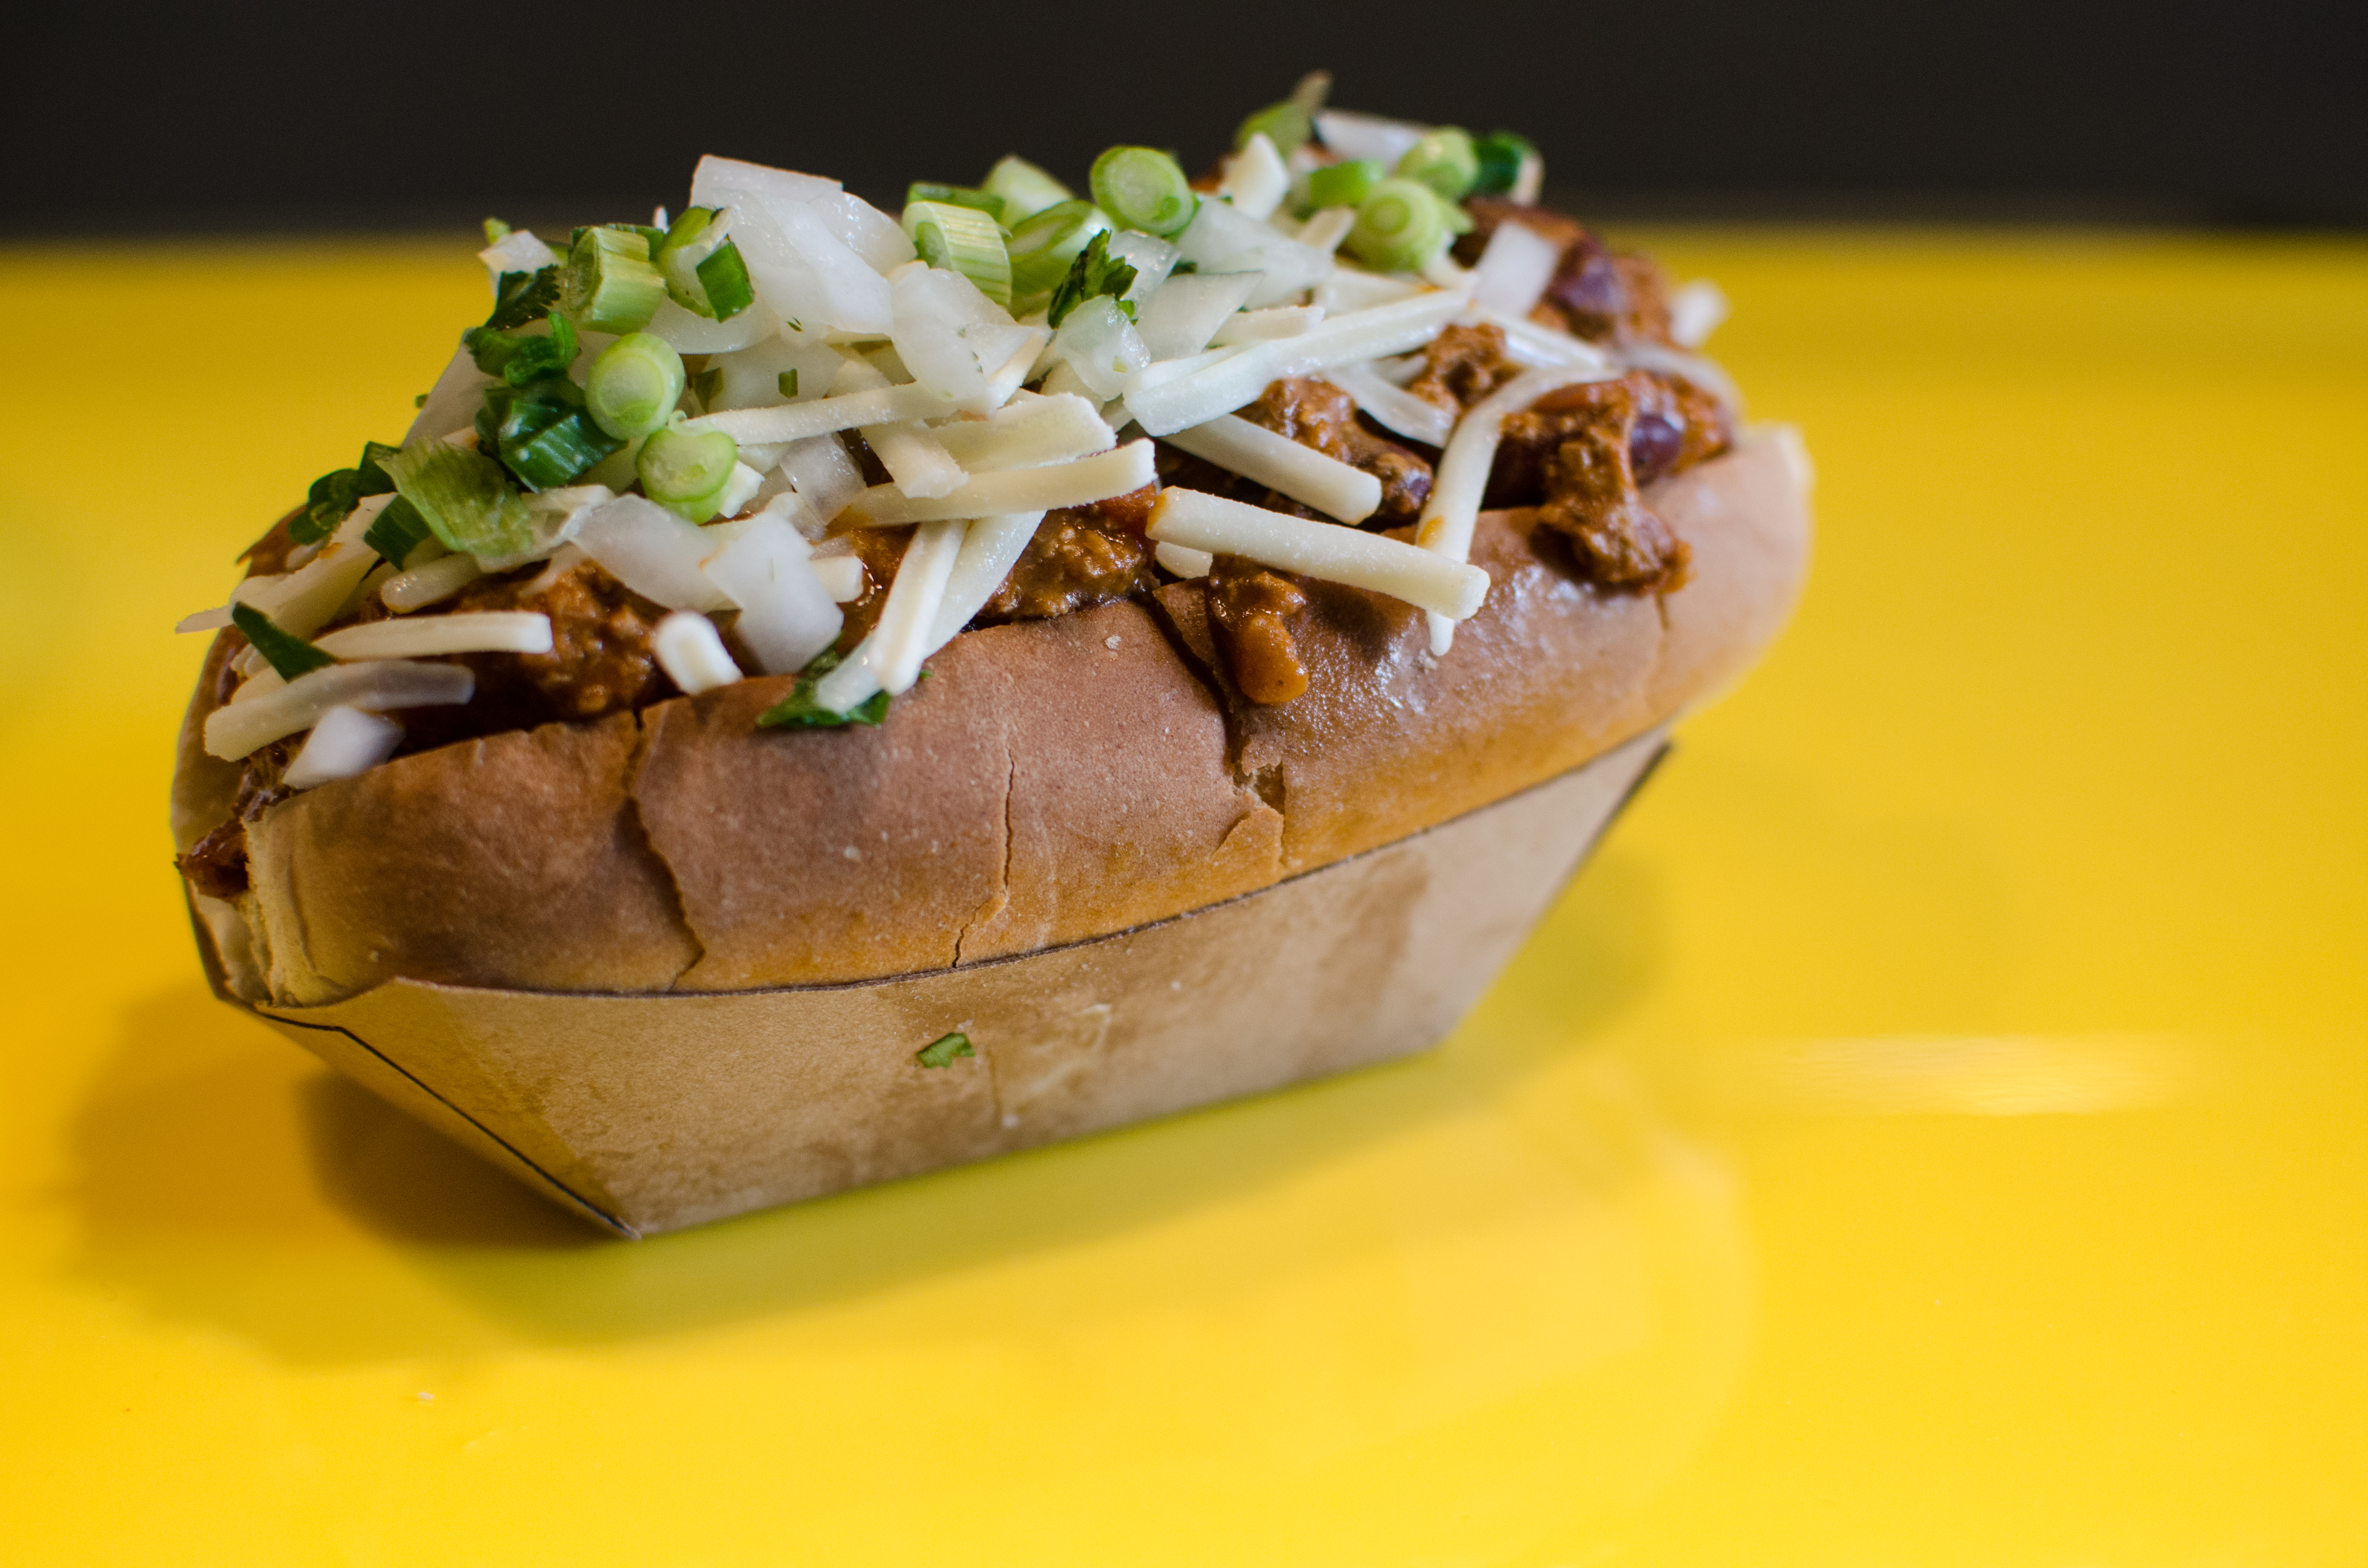 At Saus's all-vegetarian location in Somerville, the chili-cheese dog, pictured here on a bright yellow counter, is made with Beyond sausage